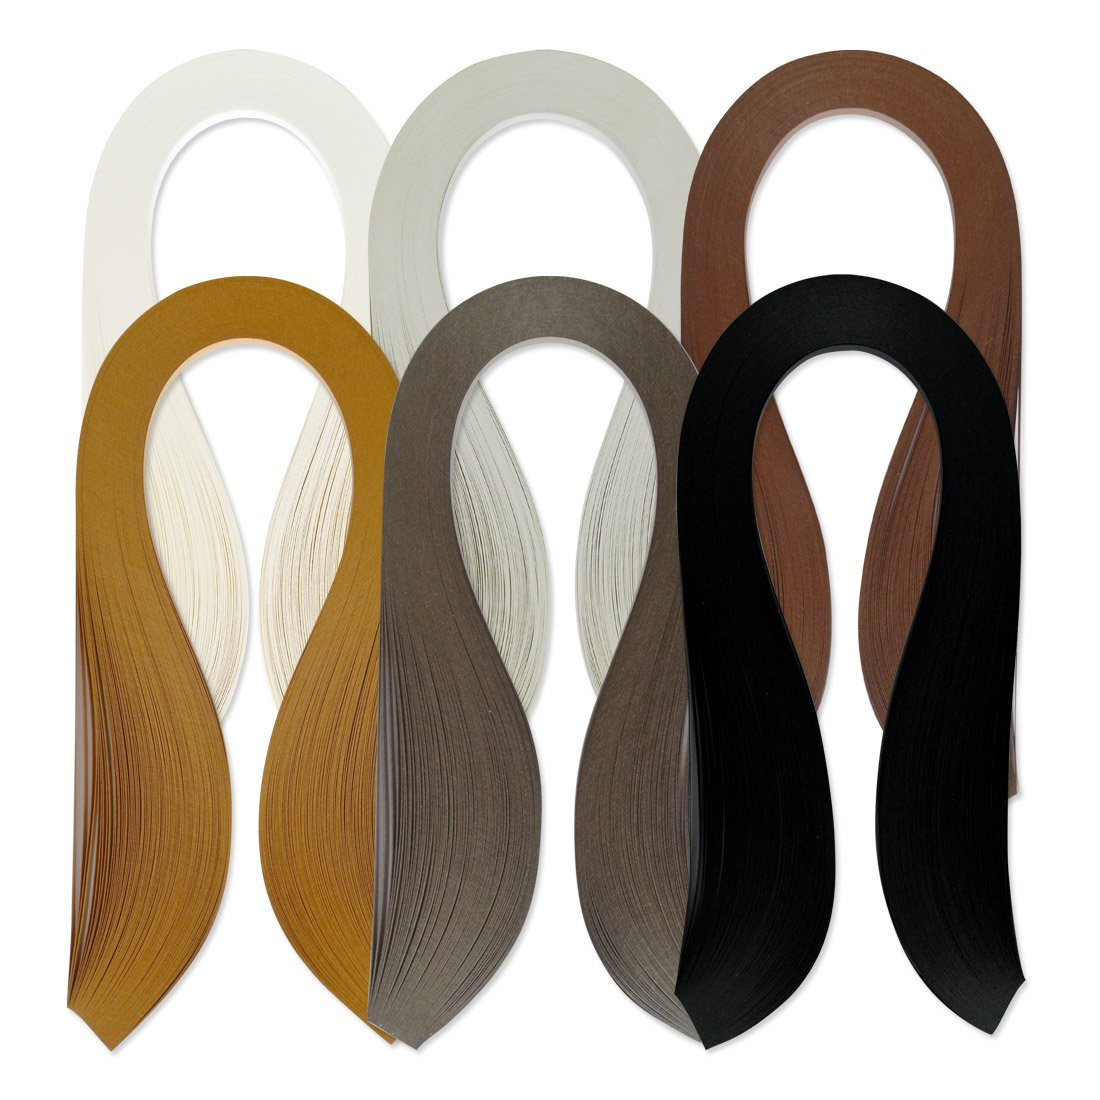 Juya Paper Quilling Set 600 Strips 6 Colors 39cm Length/strips 3/5/7/10mm Width Available (Paper Width 7mm) QP390C6